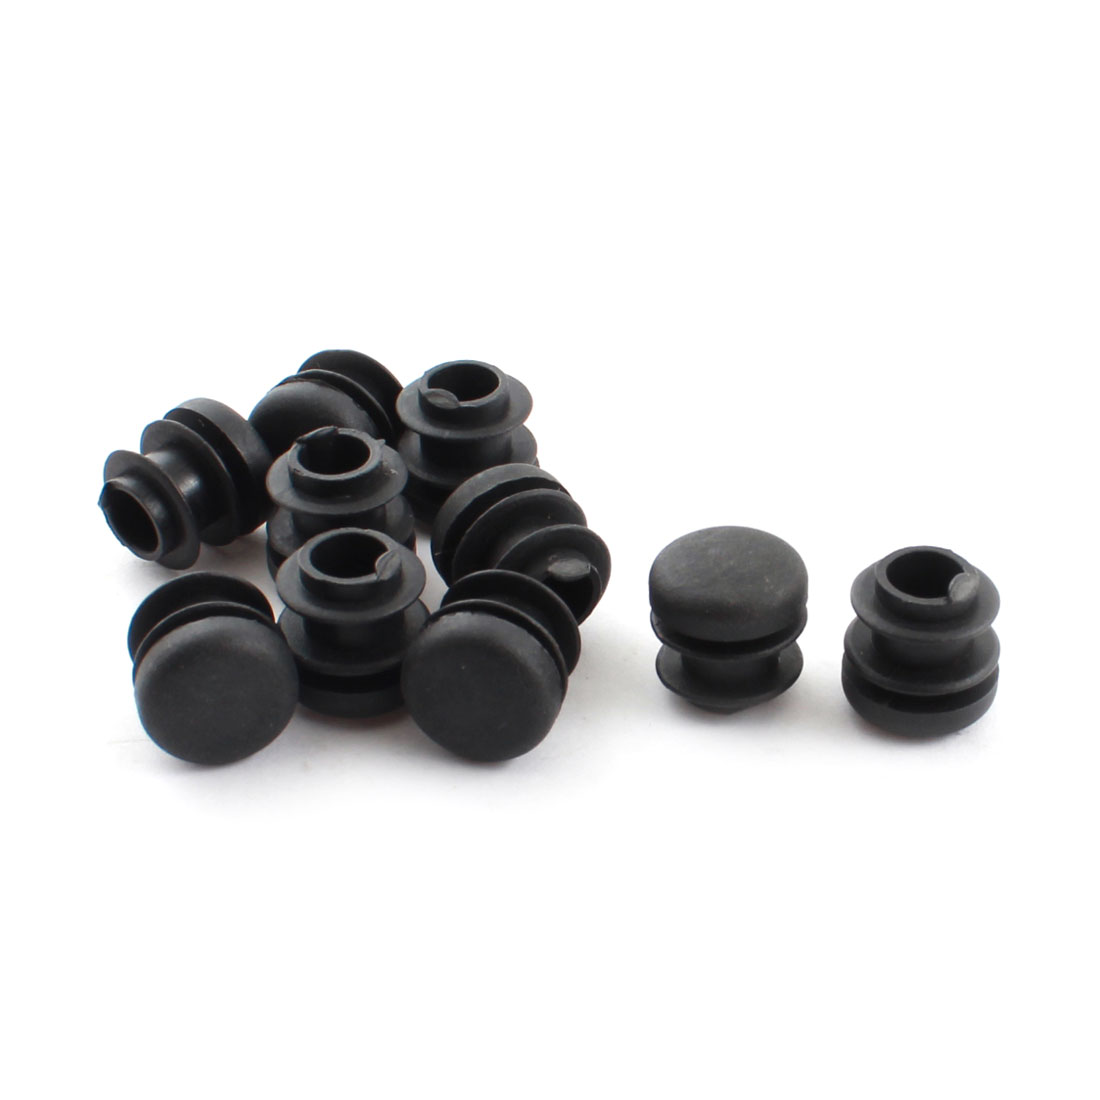 10 Pcs 16mm Diameter Black Plastic Blanking End Caps Round Tubing Tube Insert